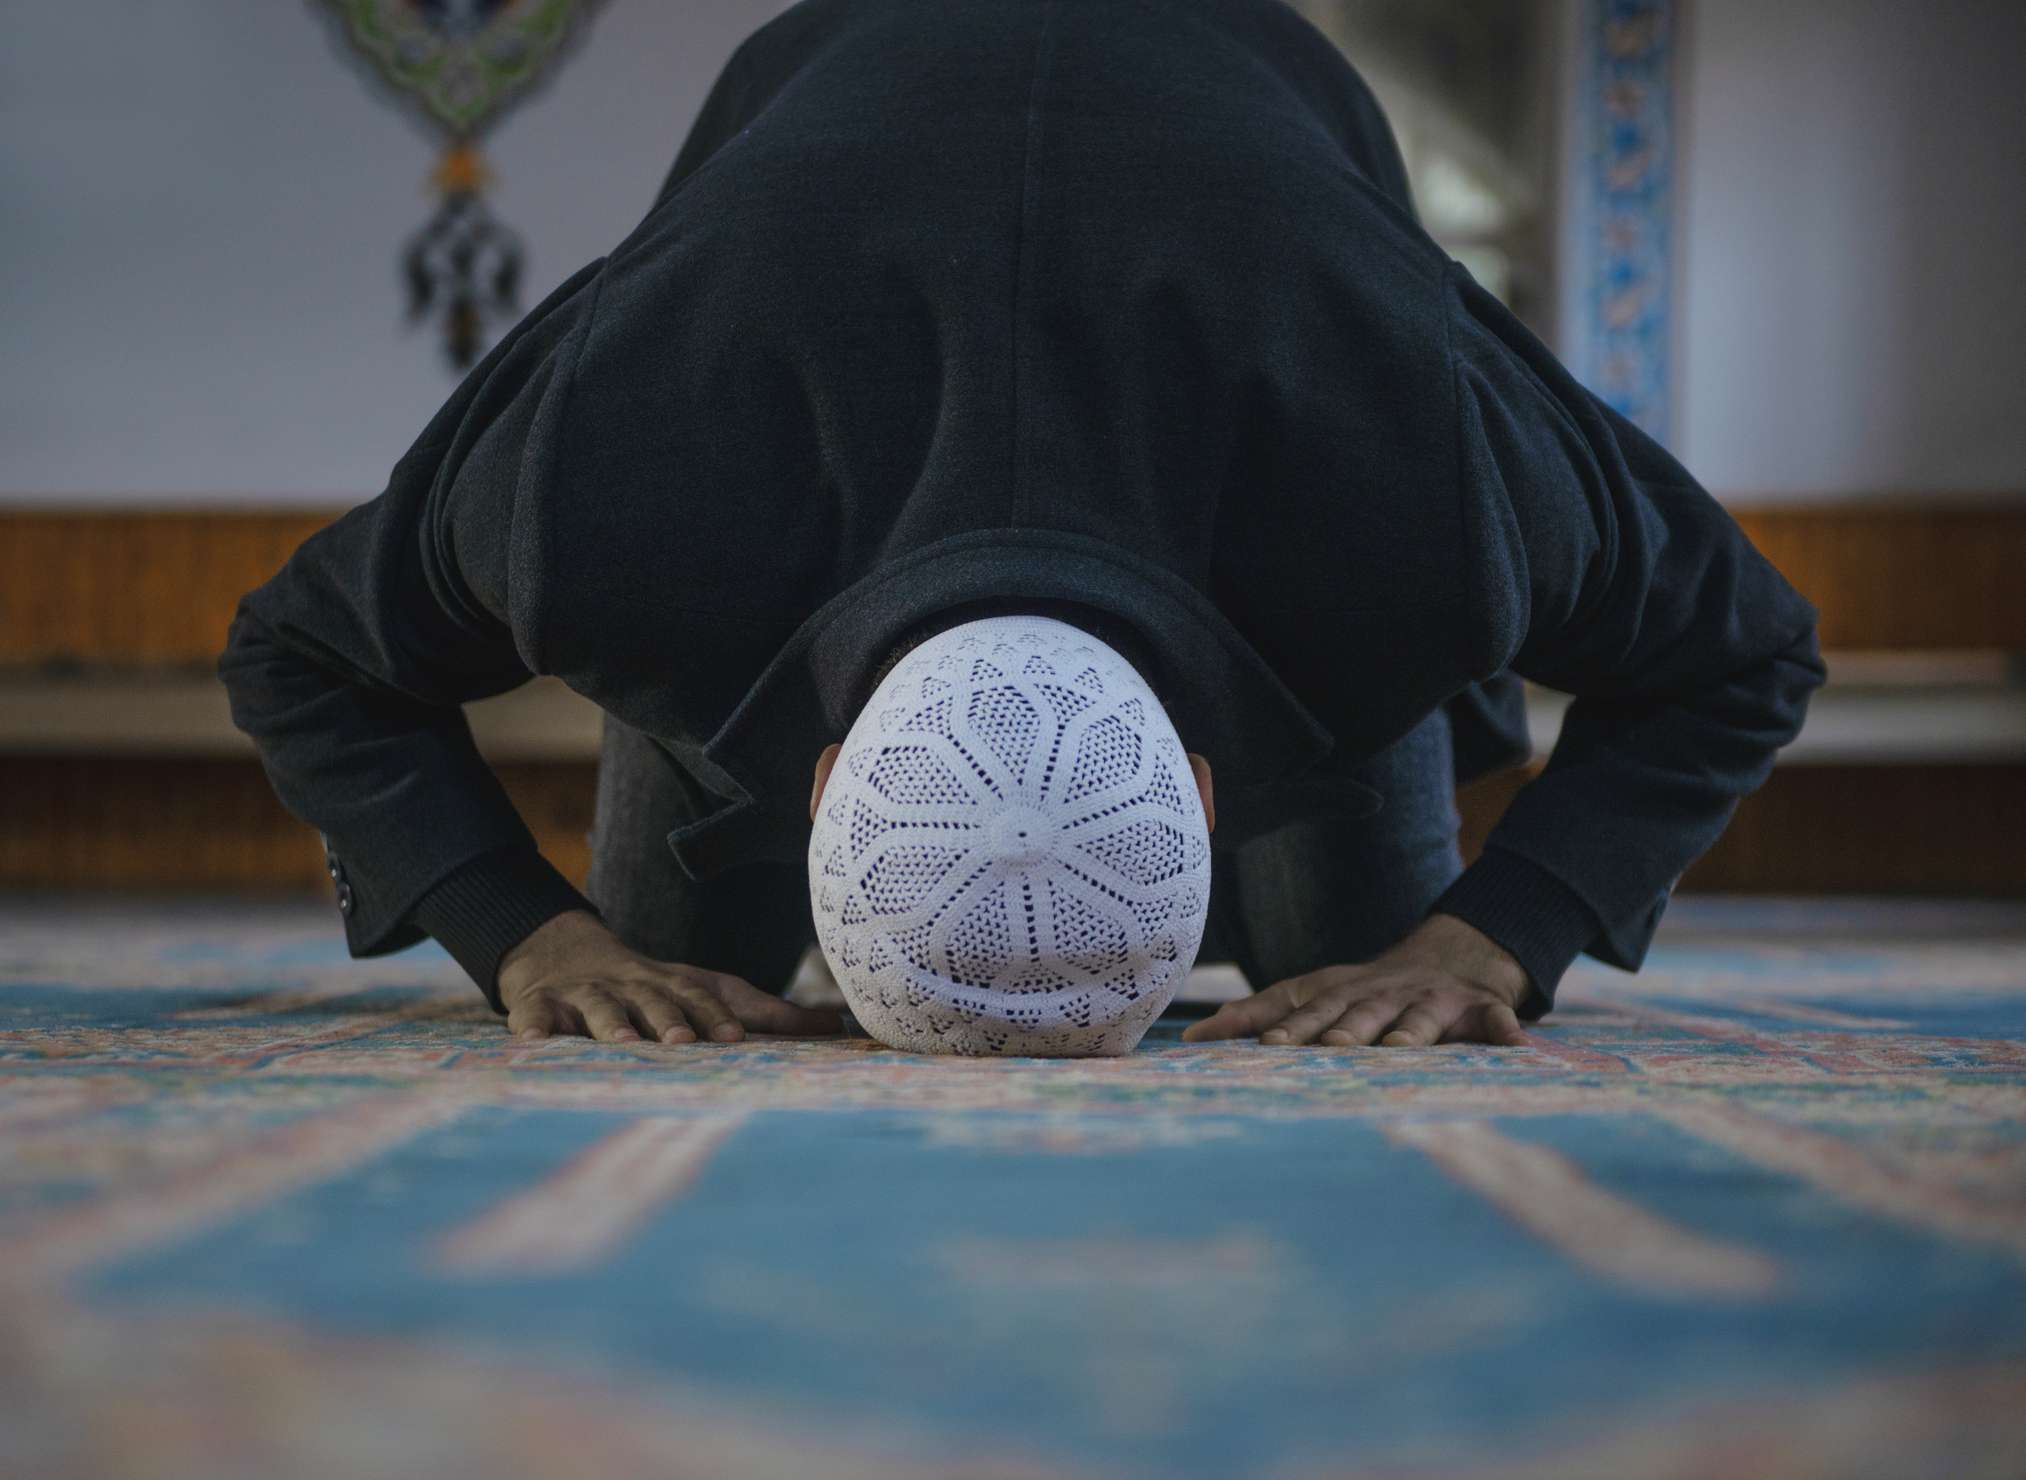 Muslim young man worshiping in a mosque